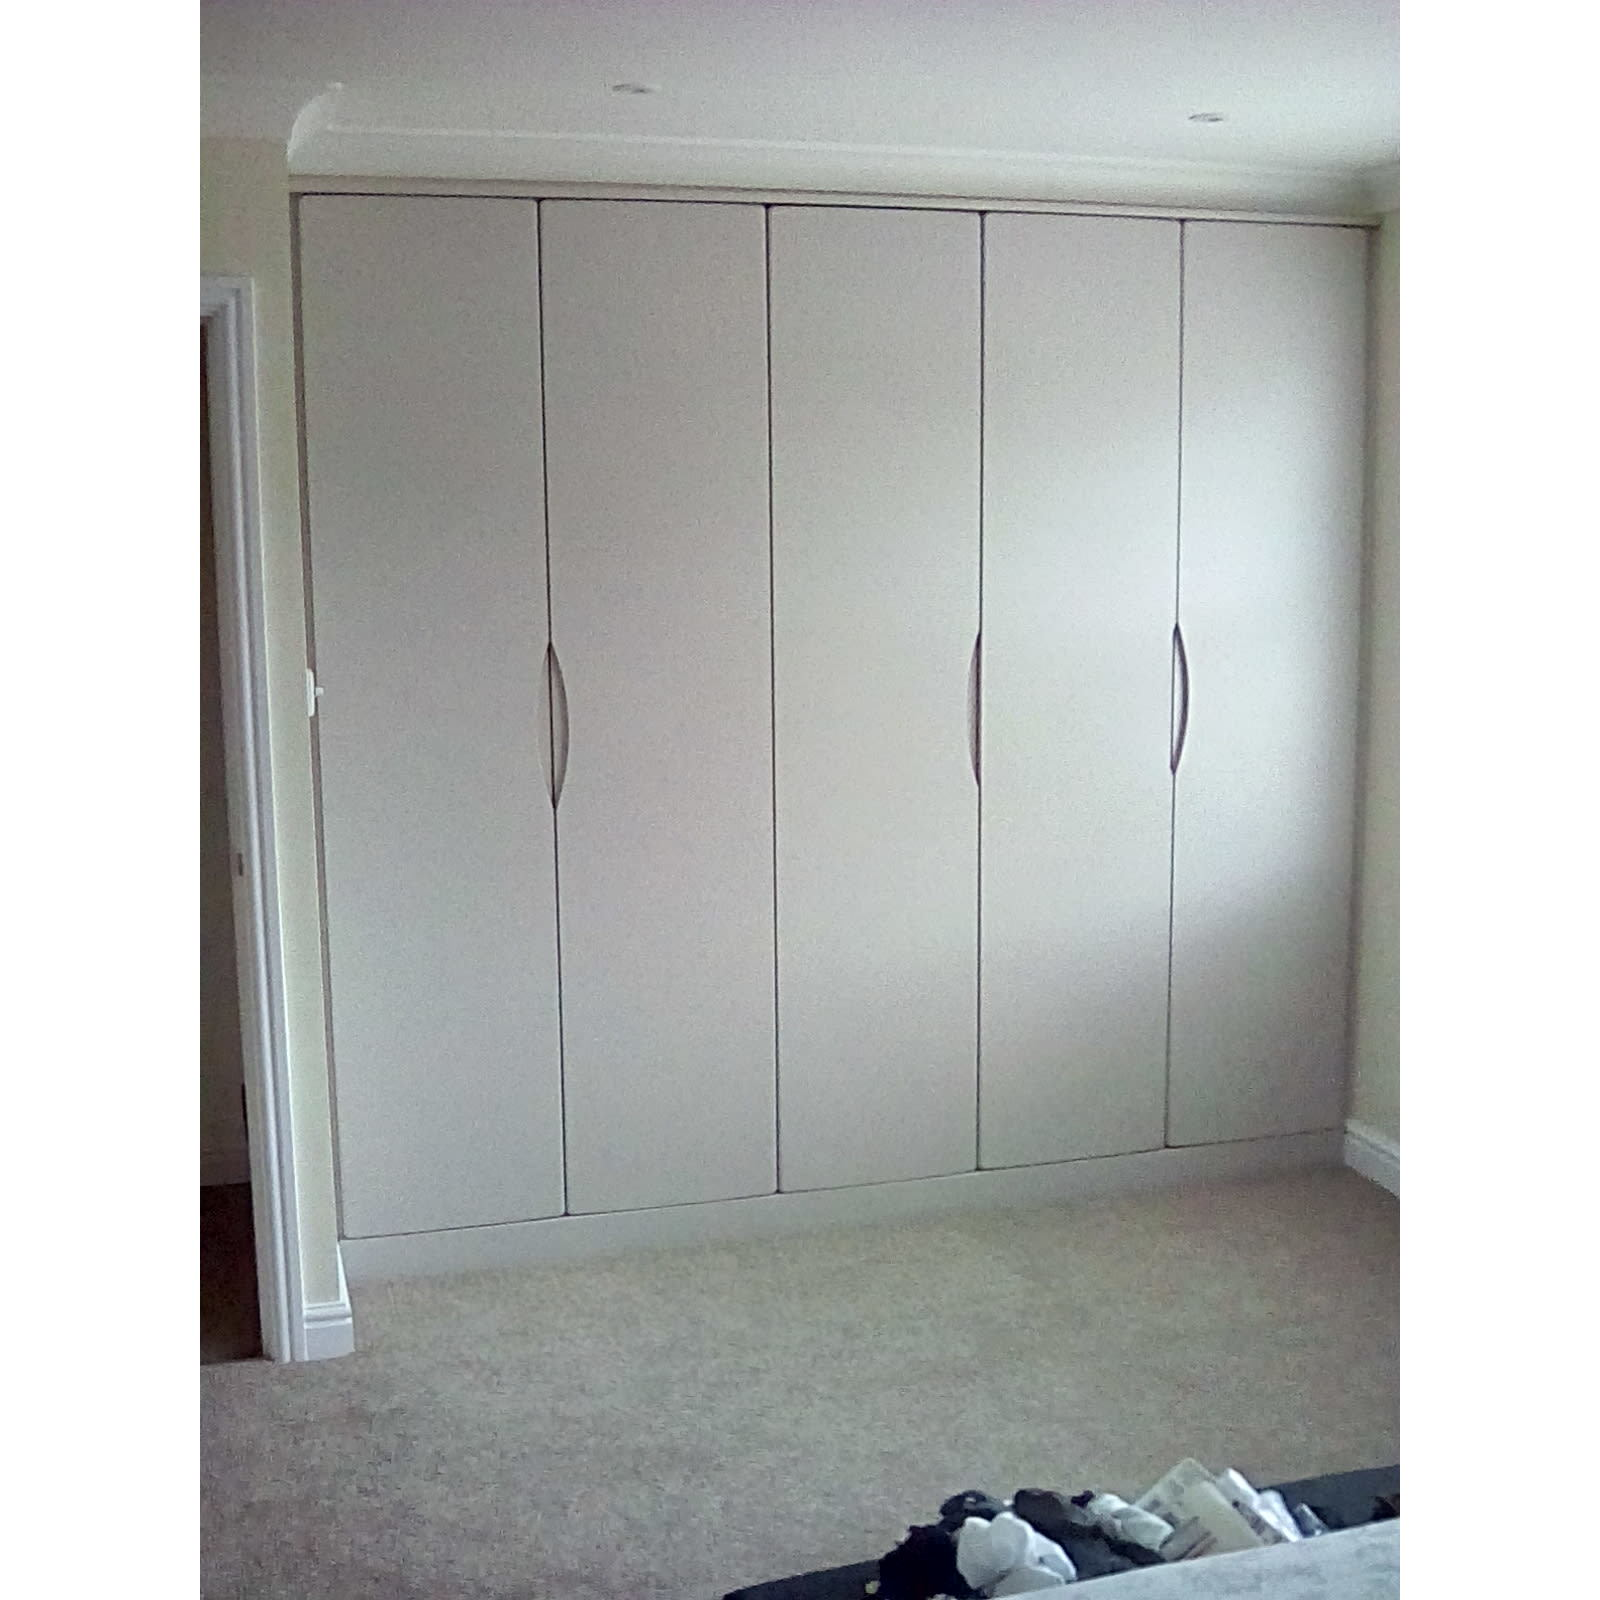 Rob Thomas Fitted Bedrooms - Rugby, Warwickshire CV21 3UD - 07790 881649 | ShowMeLocal.com